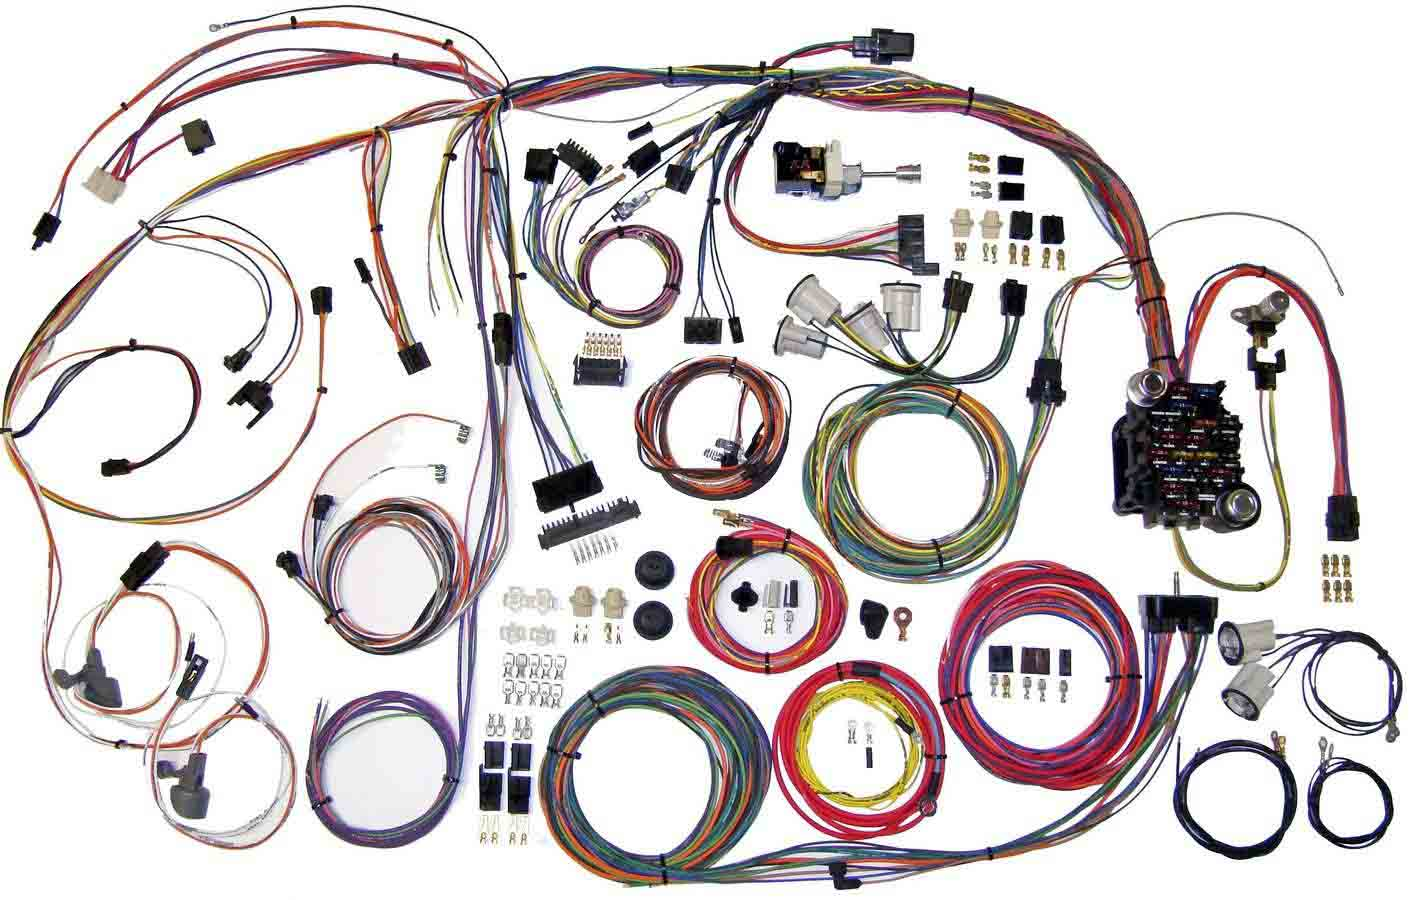 hight resolution of 68 nova wiring diagram free vehicle wiring diagrams source 1972 chevelle wiper motor wiring diagram